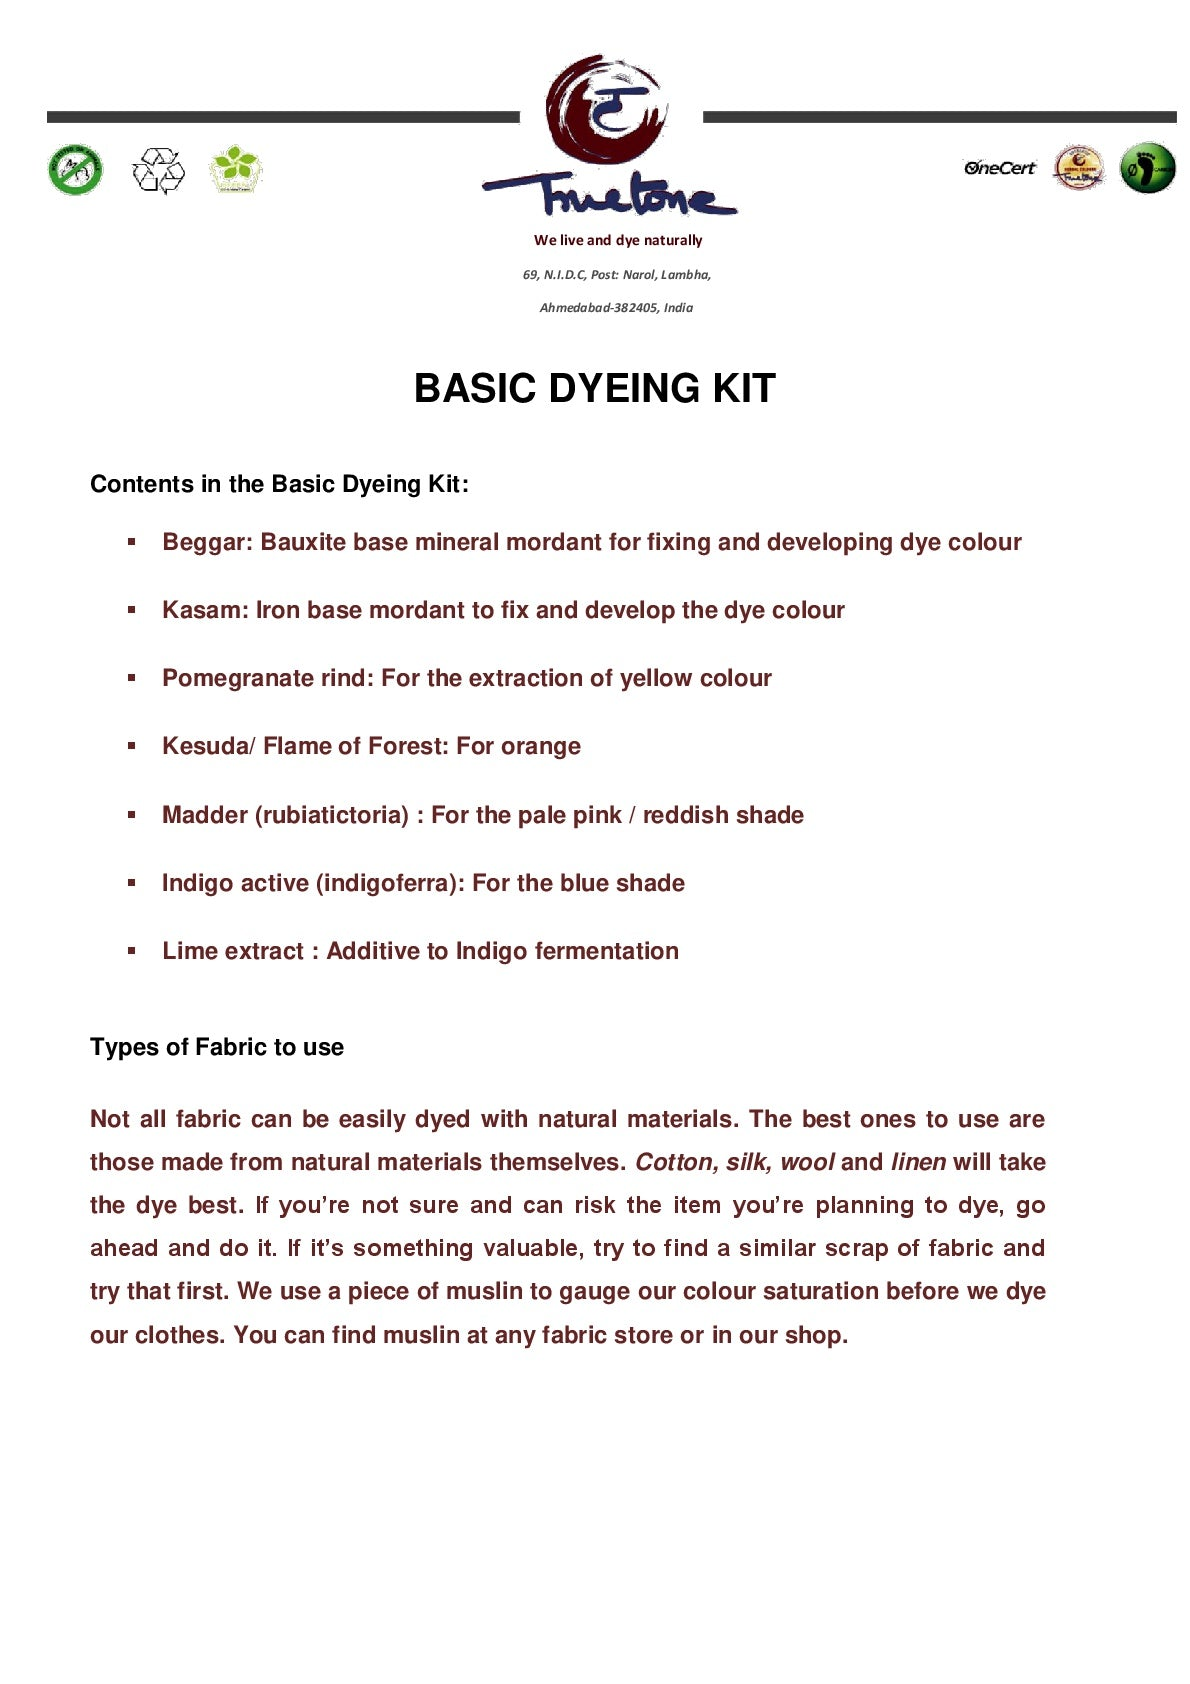 Basic Dyeing Kit